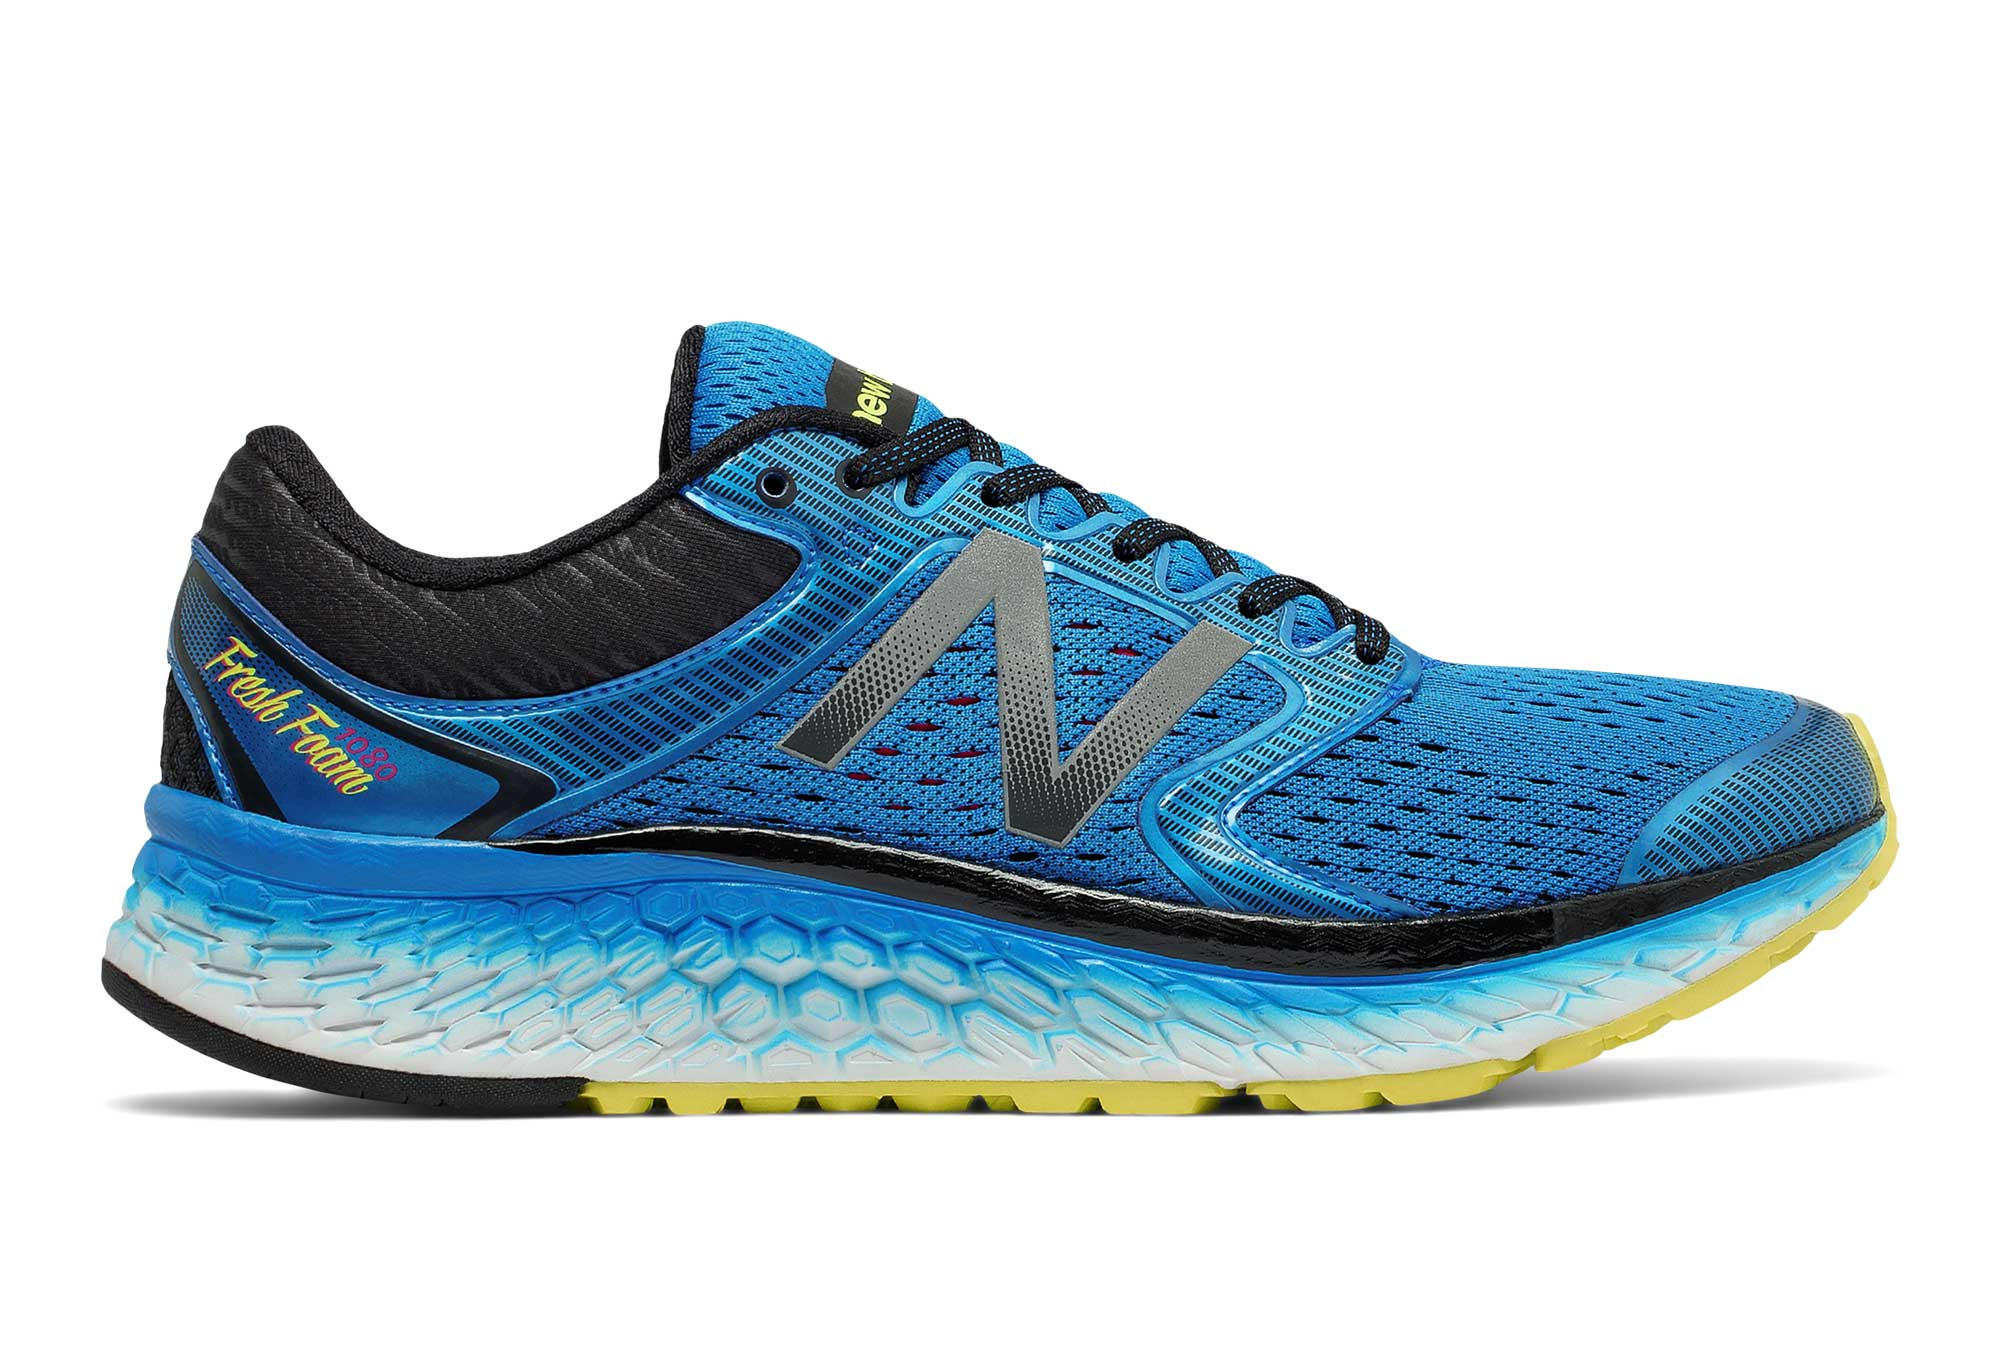 New Balance 1080 V7 amarillo